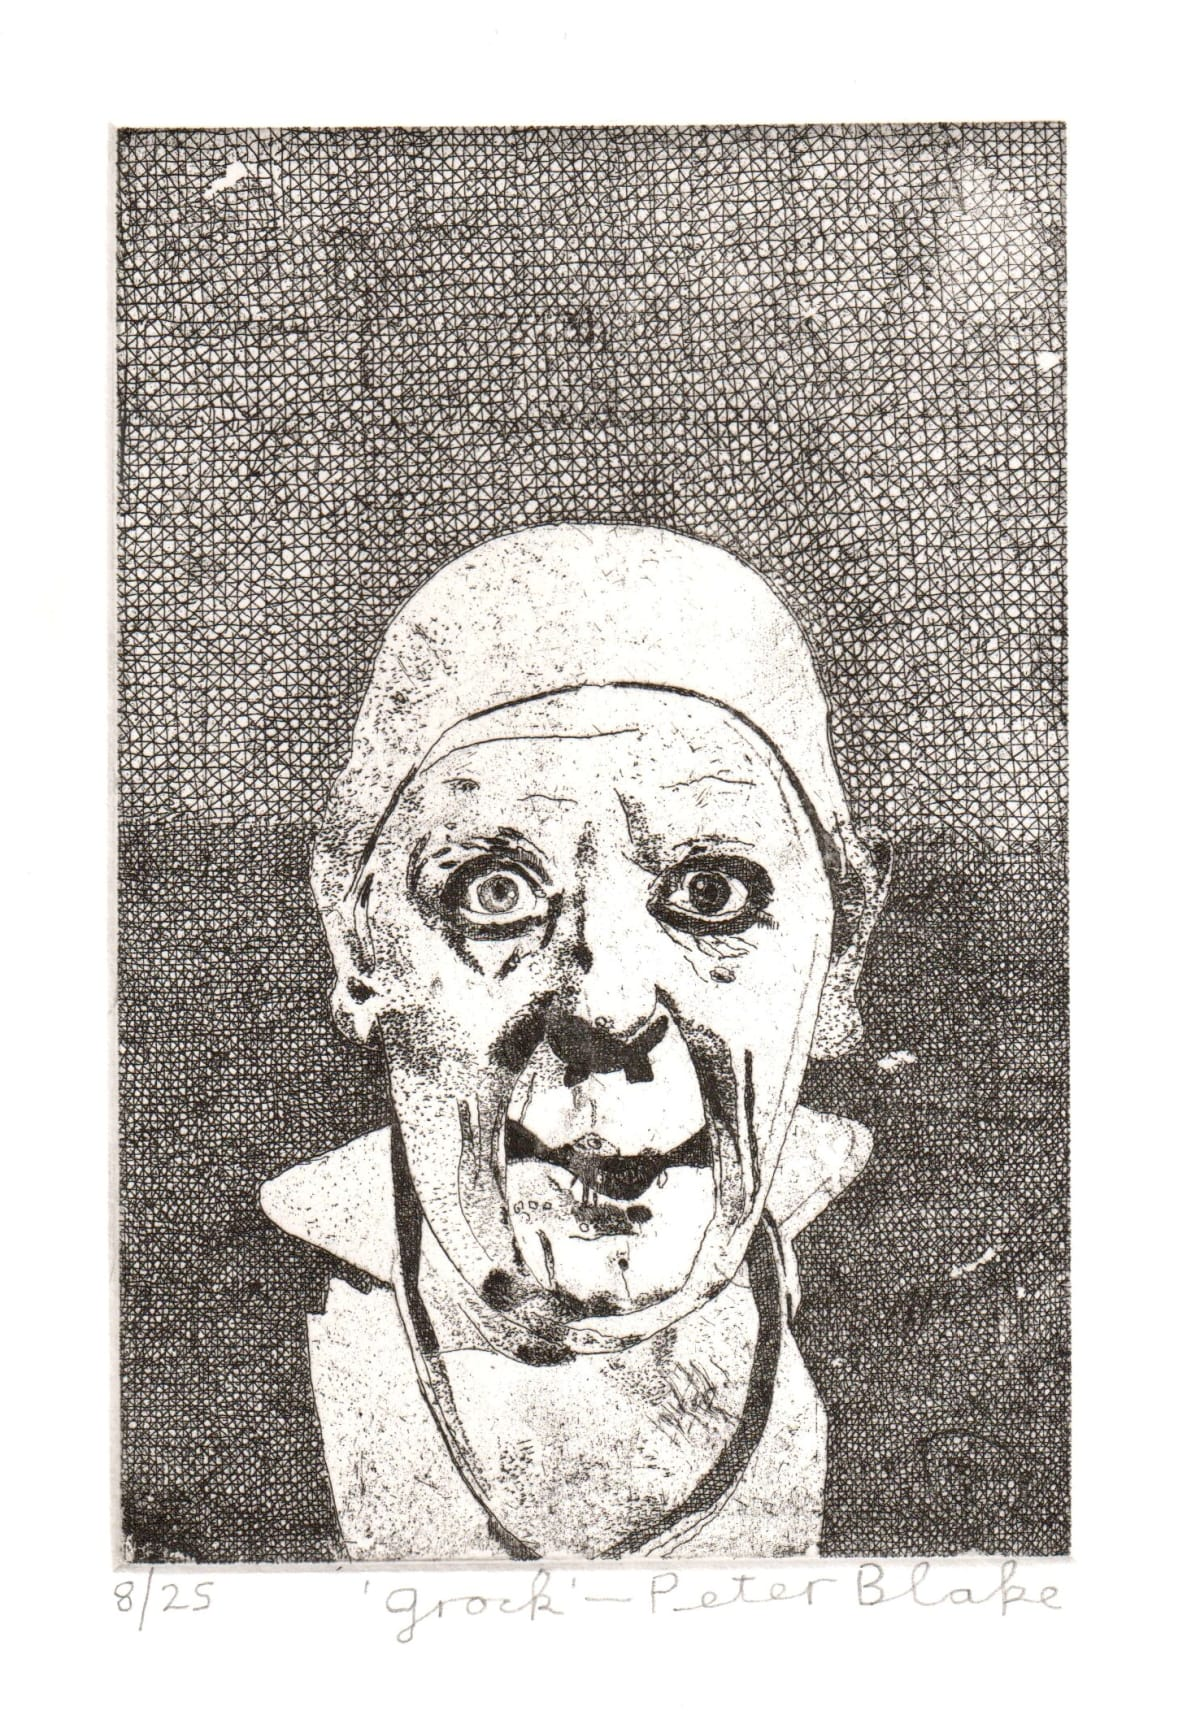 Peter Blake Grock, 2019 Etching on somerset 300gsm velvet Signed, titled and numbered Sheet Size: 26 x 21 cm Image size: 10 x 15 cm Edition of 25